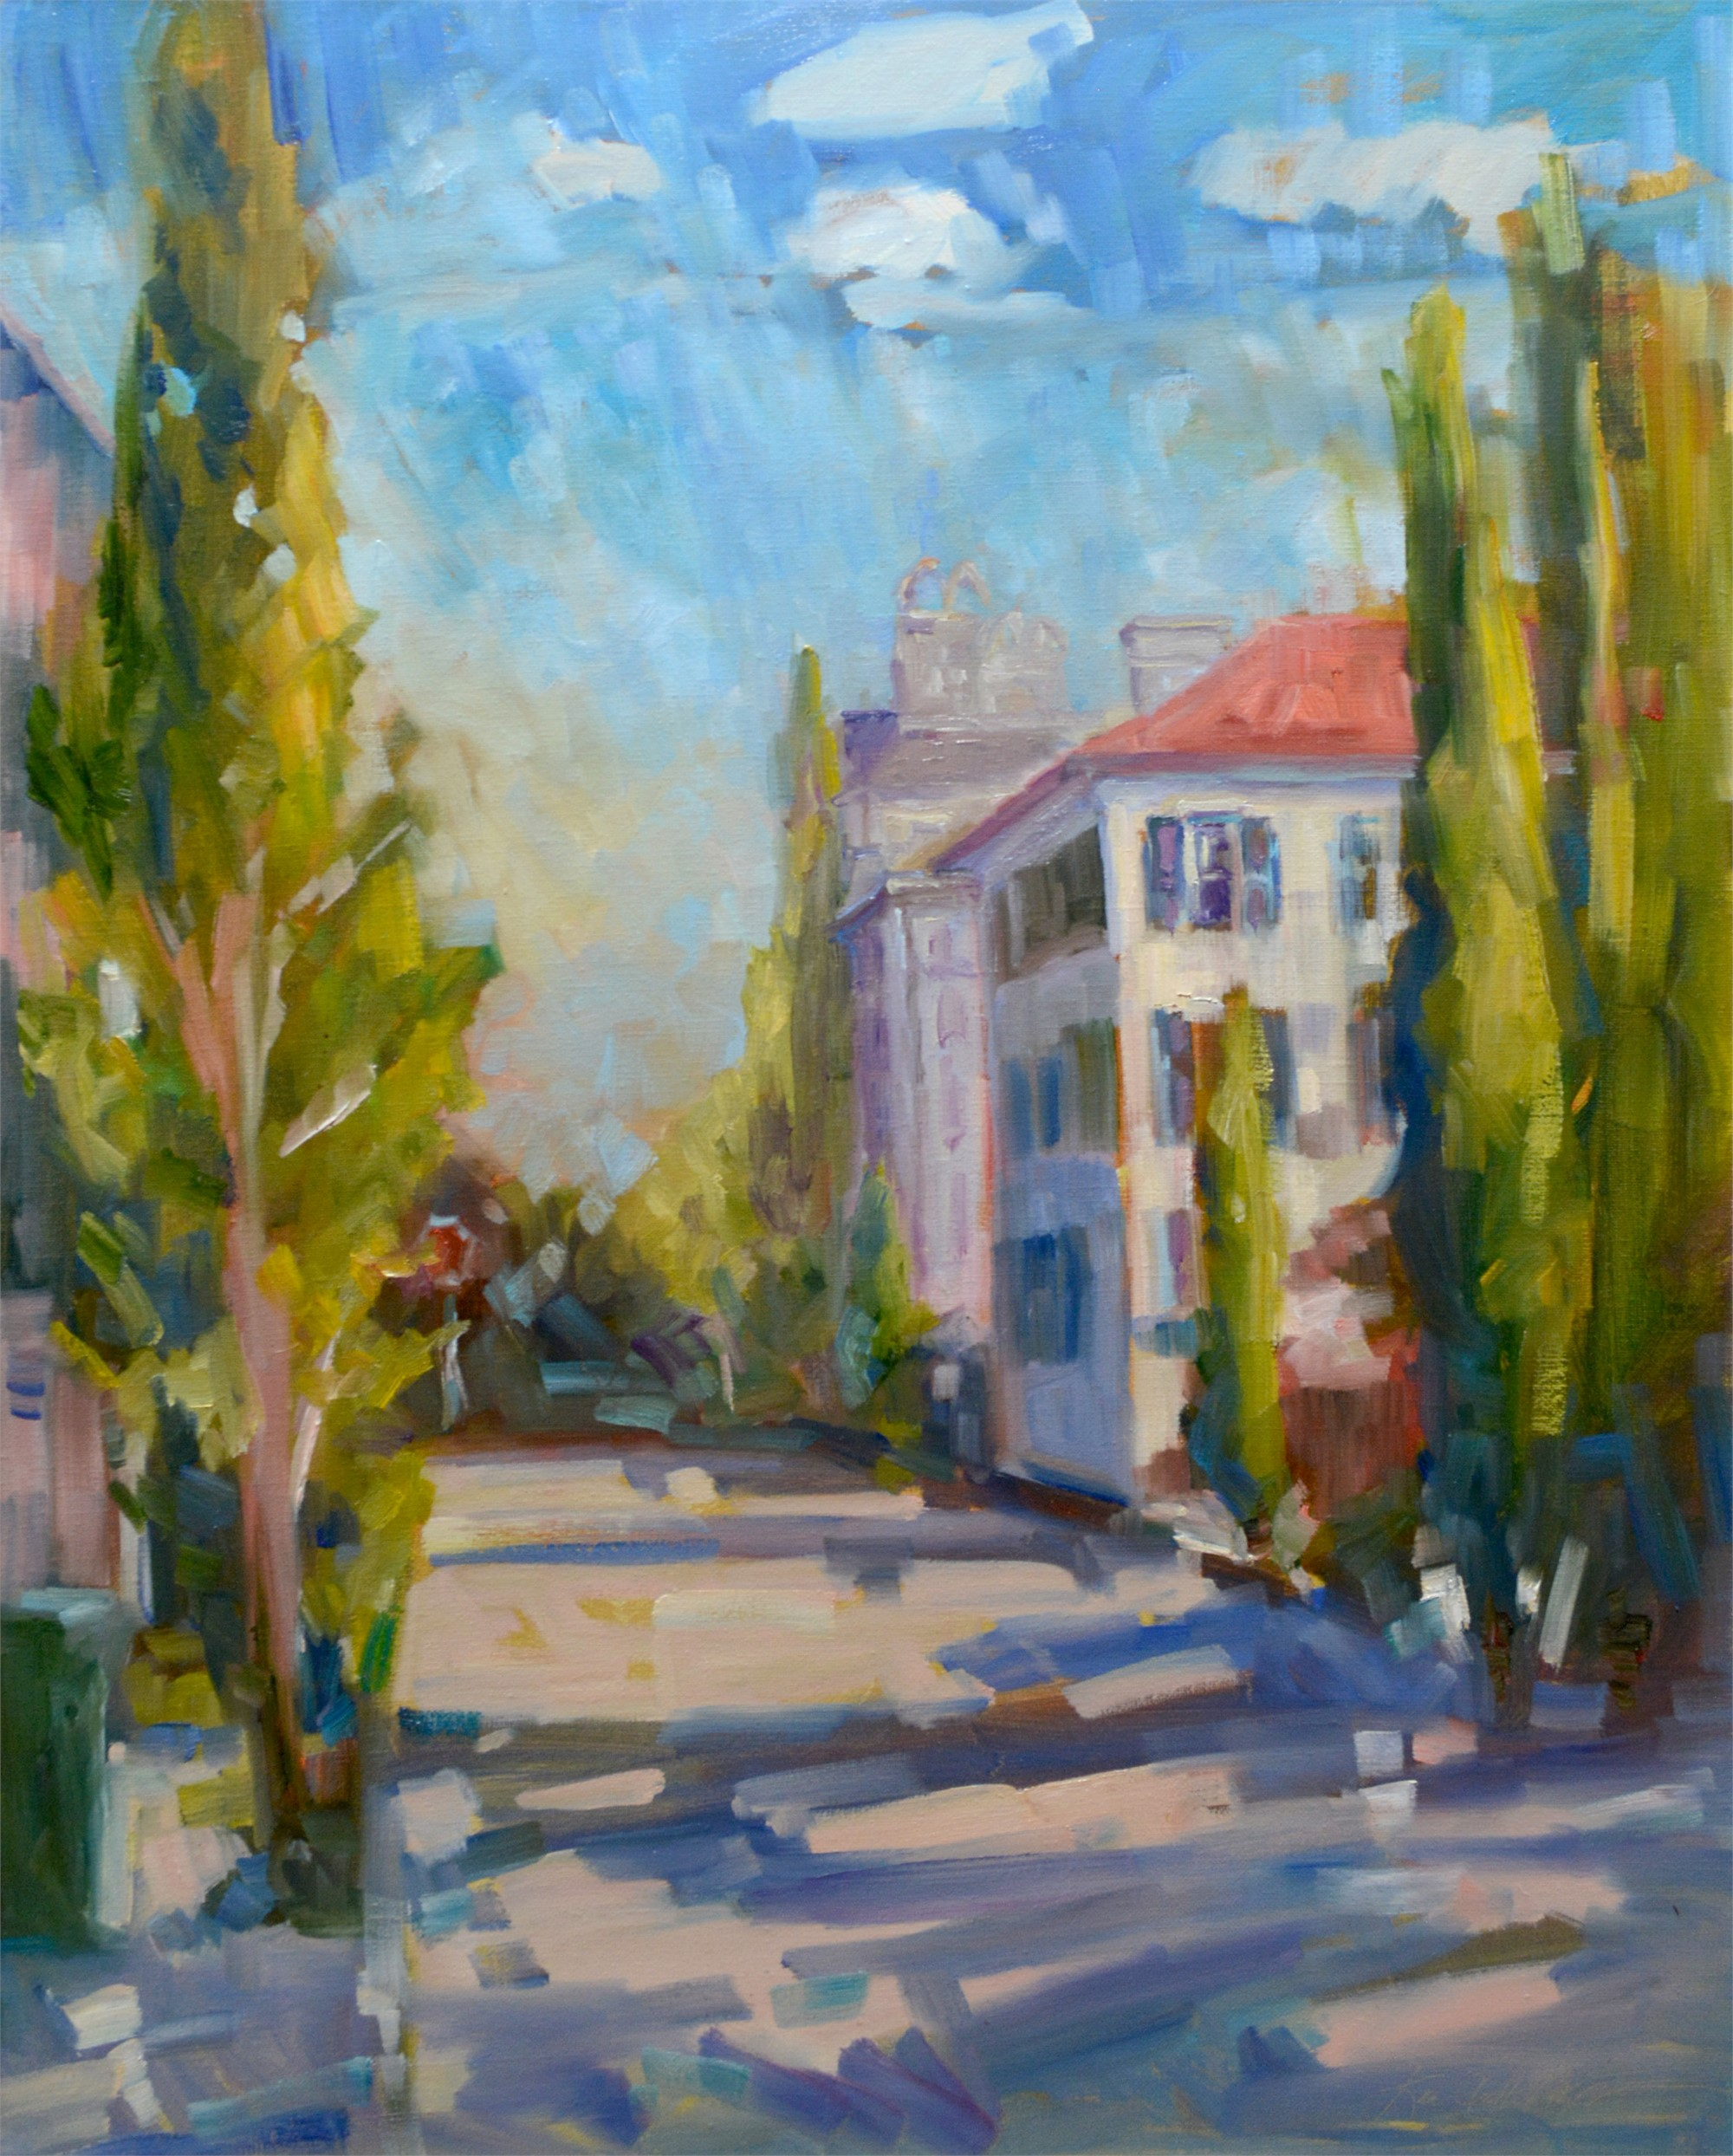 Long View of St. Michael's Alley by Karen Hewitt Hagan